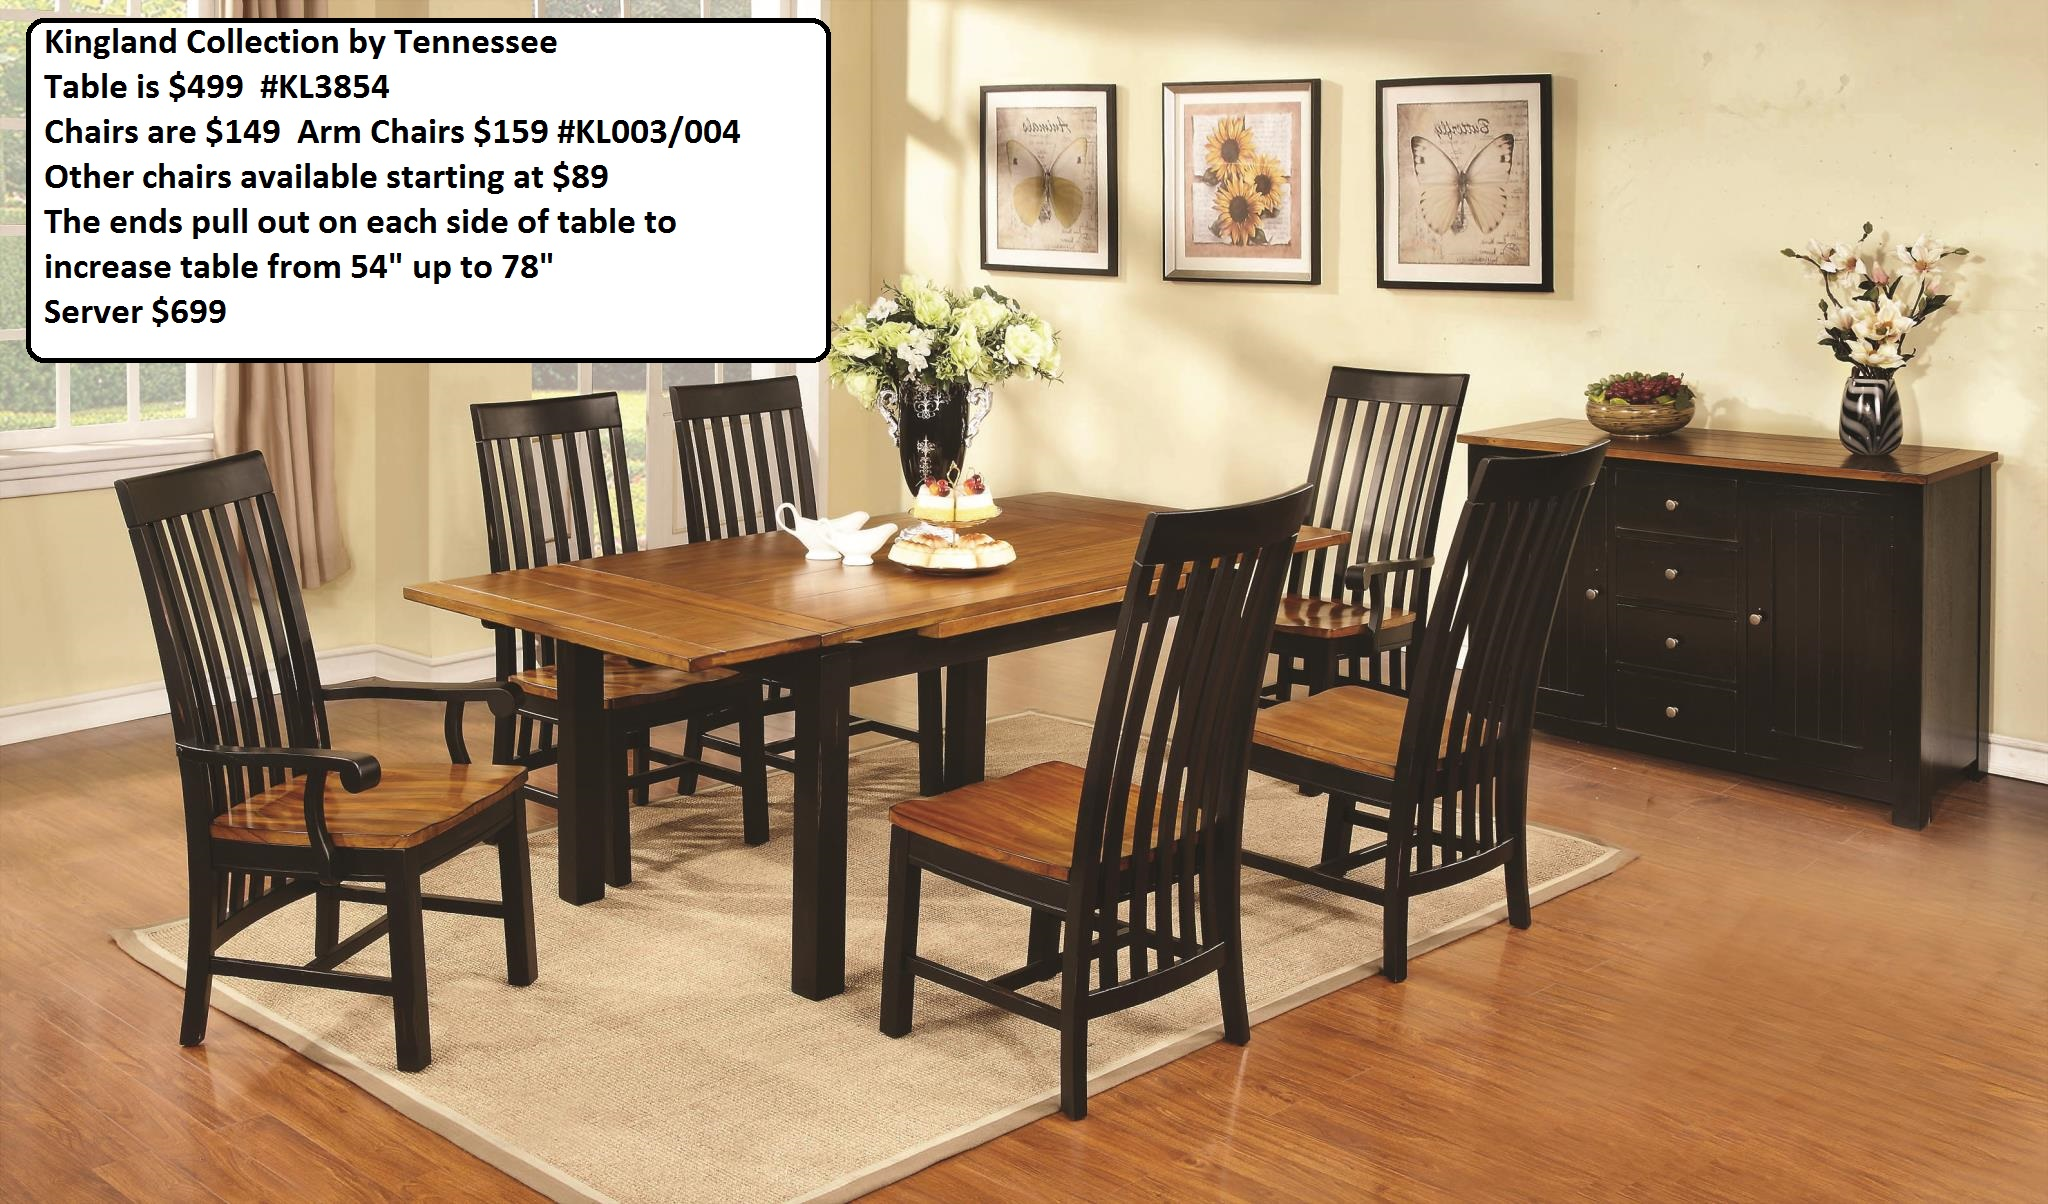 View full size image for Kitchen dining room chairs